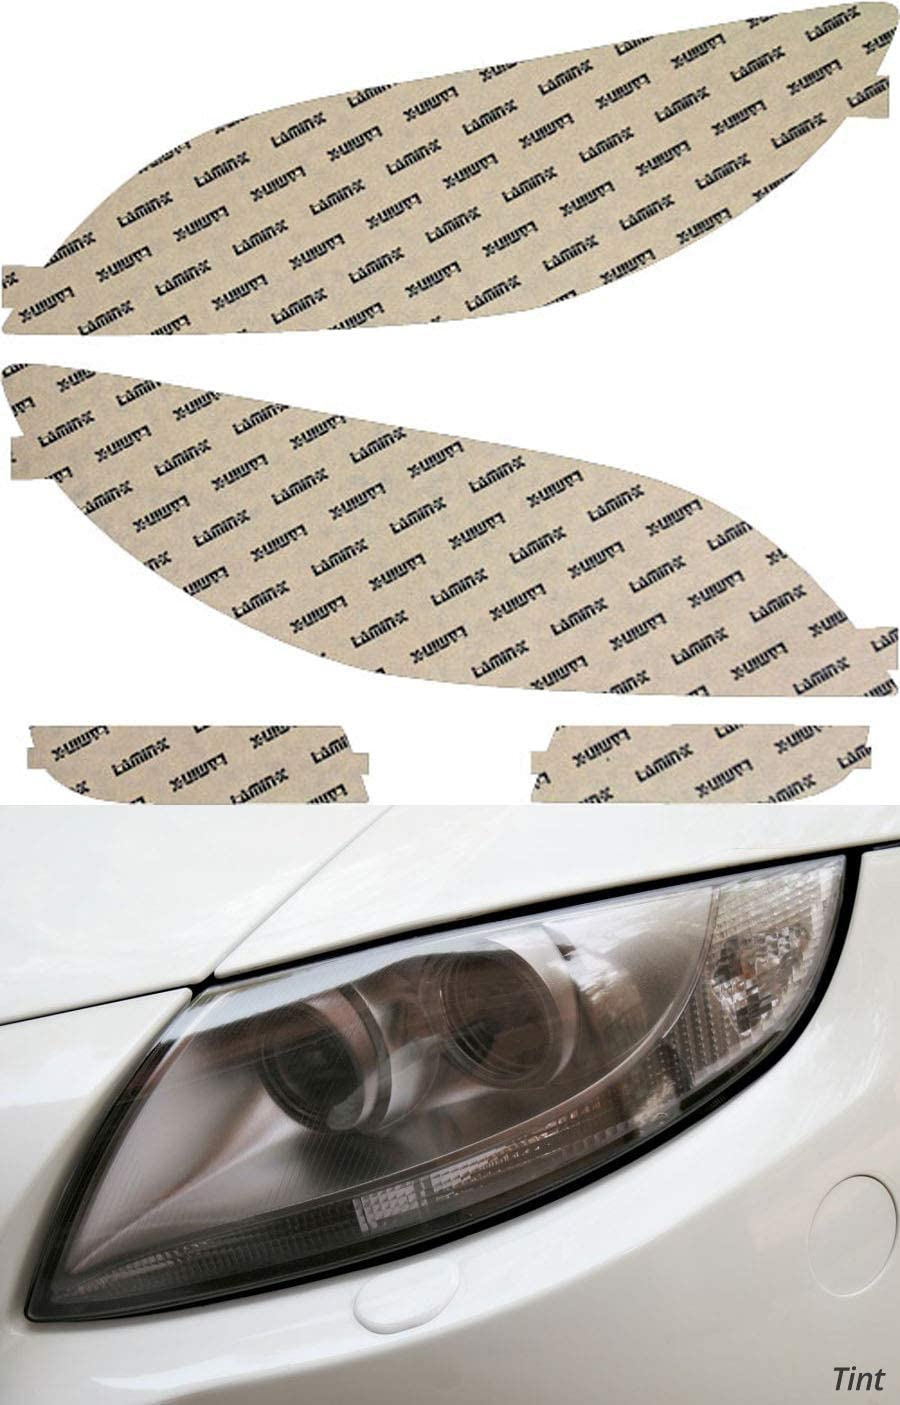 Lamin-x Quantity limited Manufacturer regenerated product Custom Fit Tint Headlight Covers for 3 07-0 Mazda Sedan